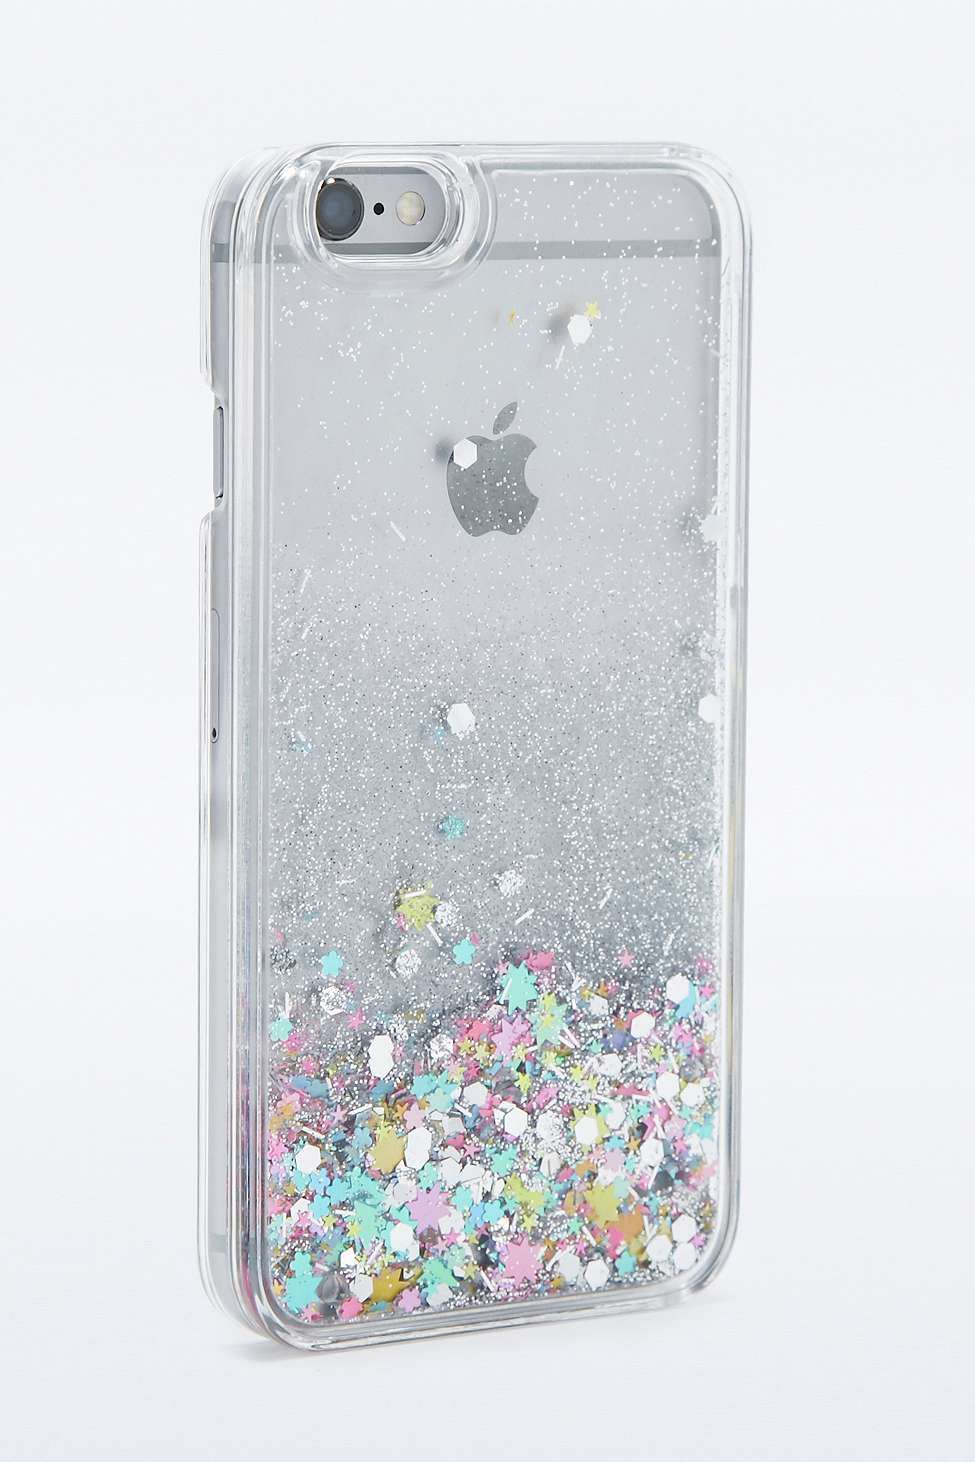 Urban Outfitters Iphone Hulle Handyhullen Iphone 6 Iphone 6 Hulle